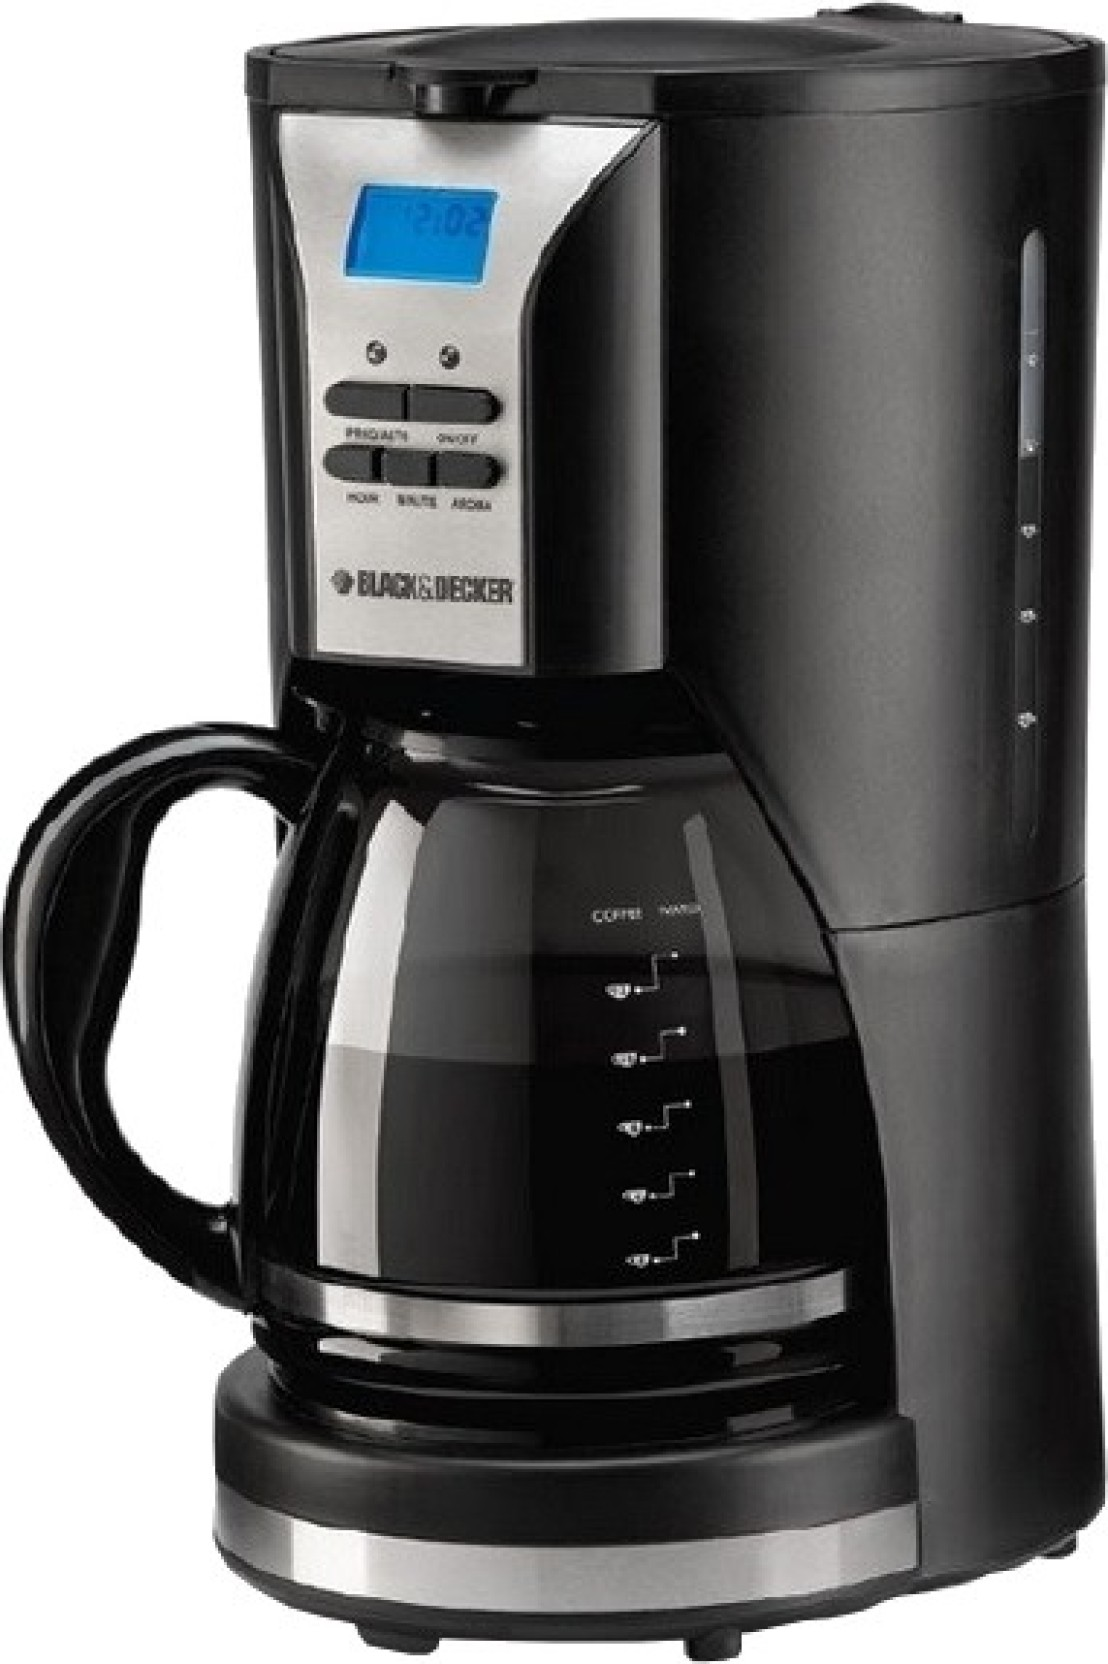 Black & Decker DCM90 12 Cups Coffee Maker Price in India - Buy Black & Decker DCM90 12 Cups ...